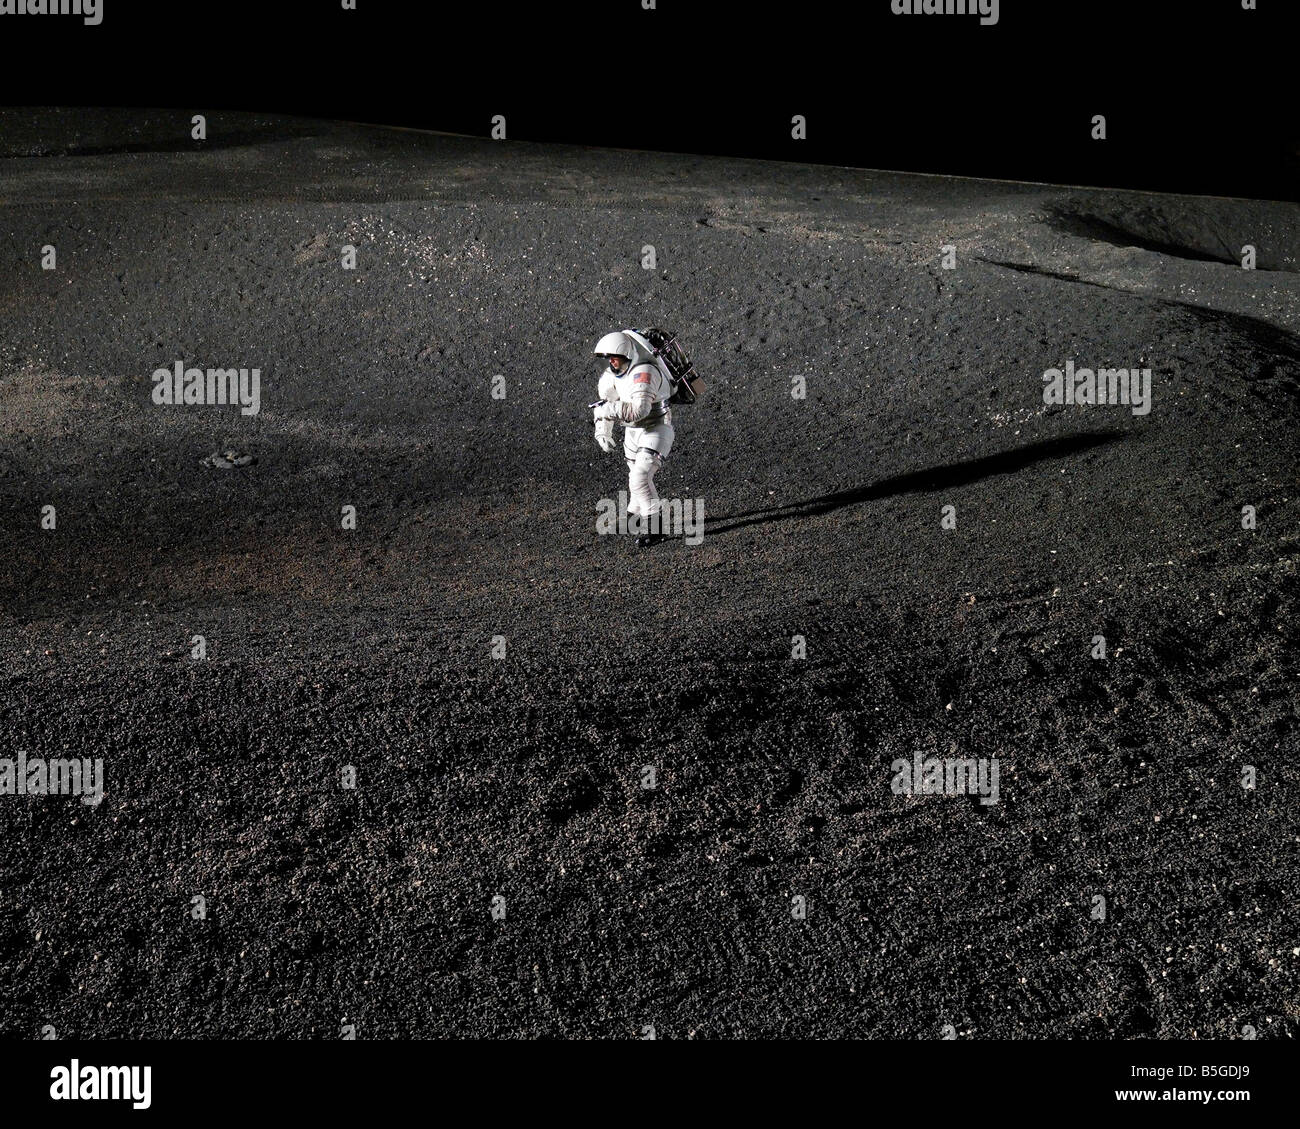 Spacesuit engineer simulates work inside a crater in Johnson Space Center's Lunar Yard. - Stock Image